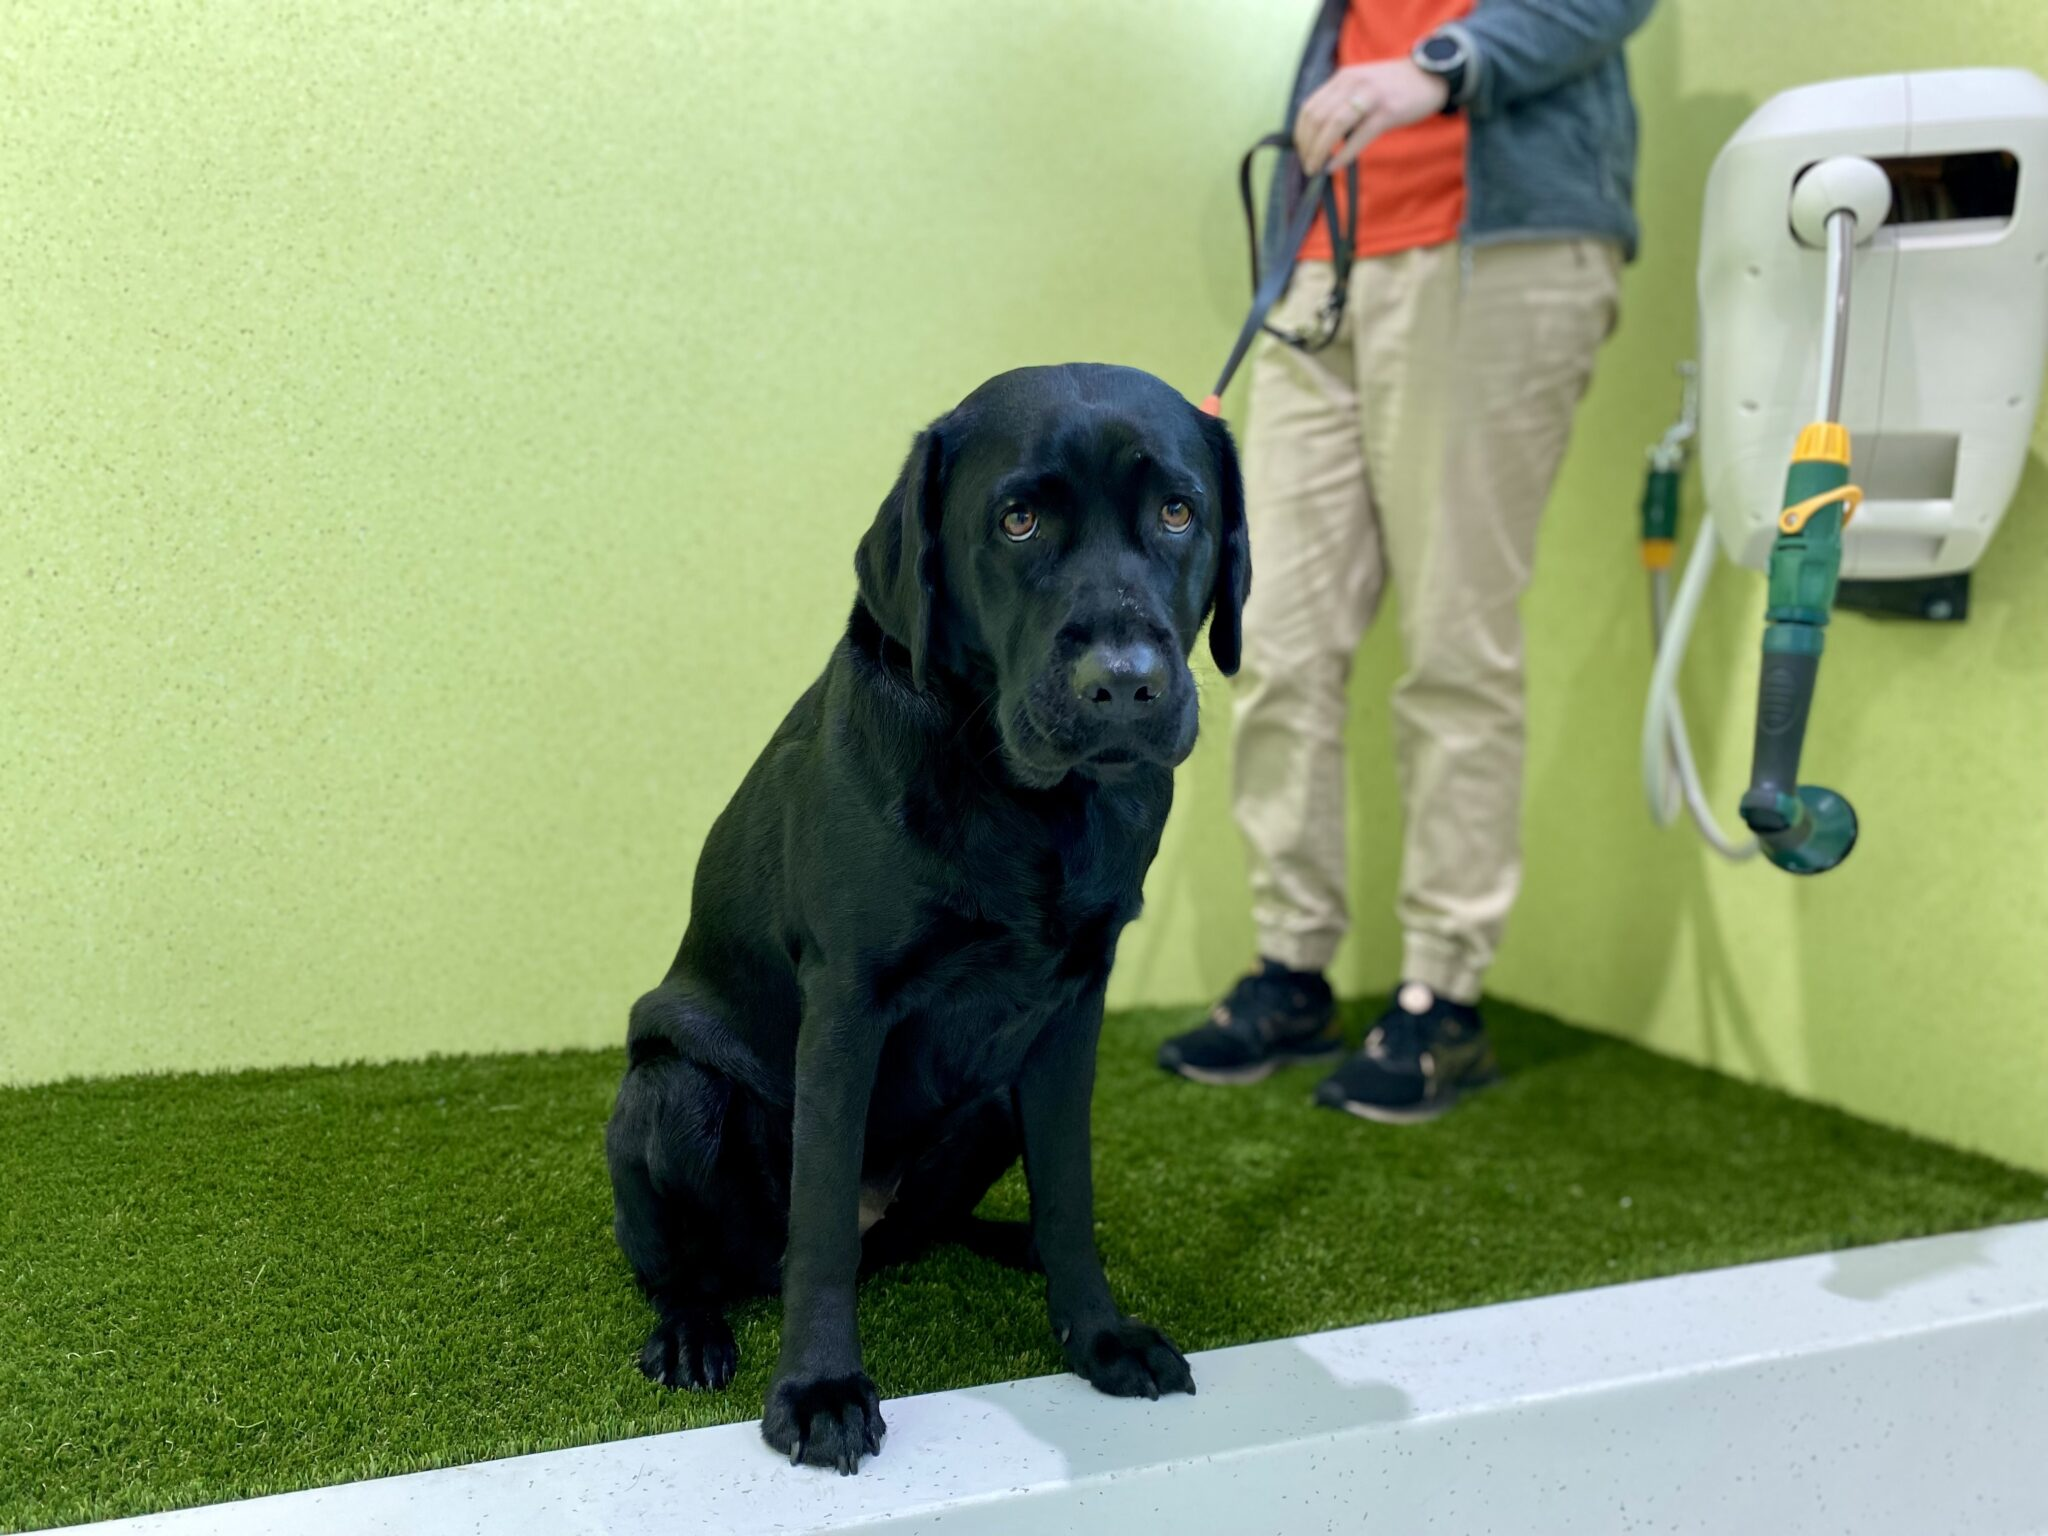 Black lab posing for photo at Perth Airport's animal relief area